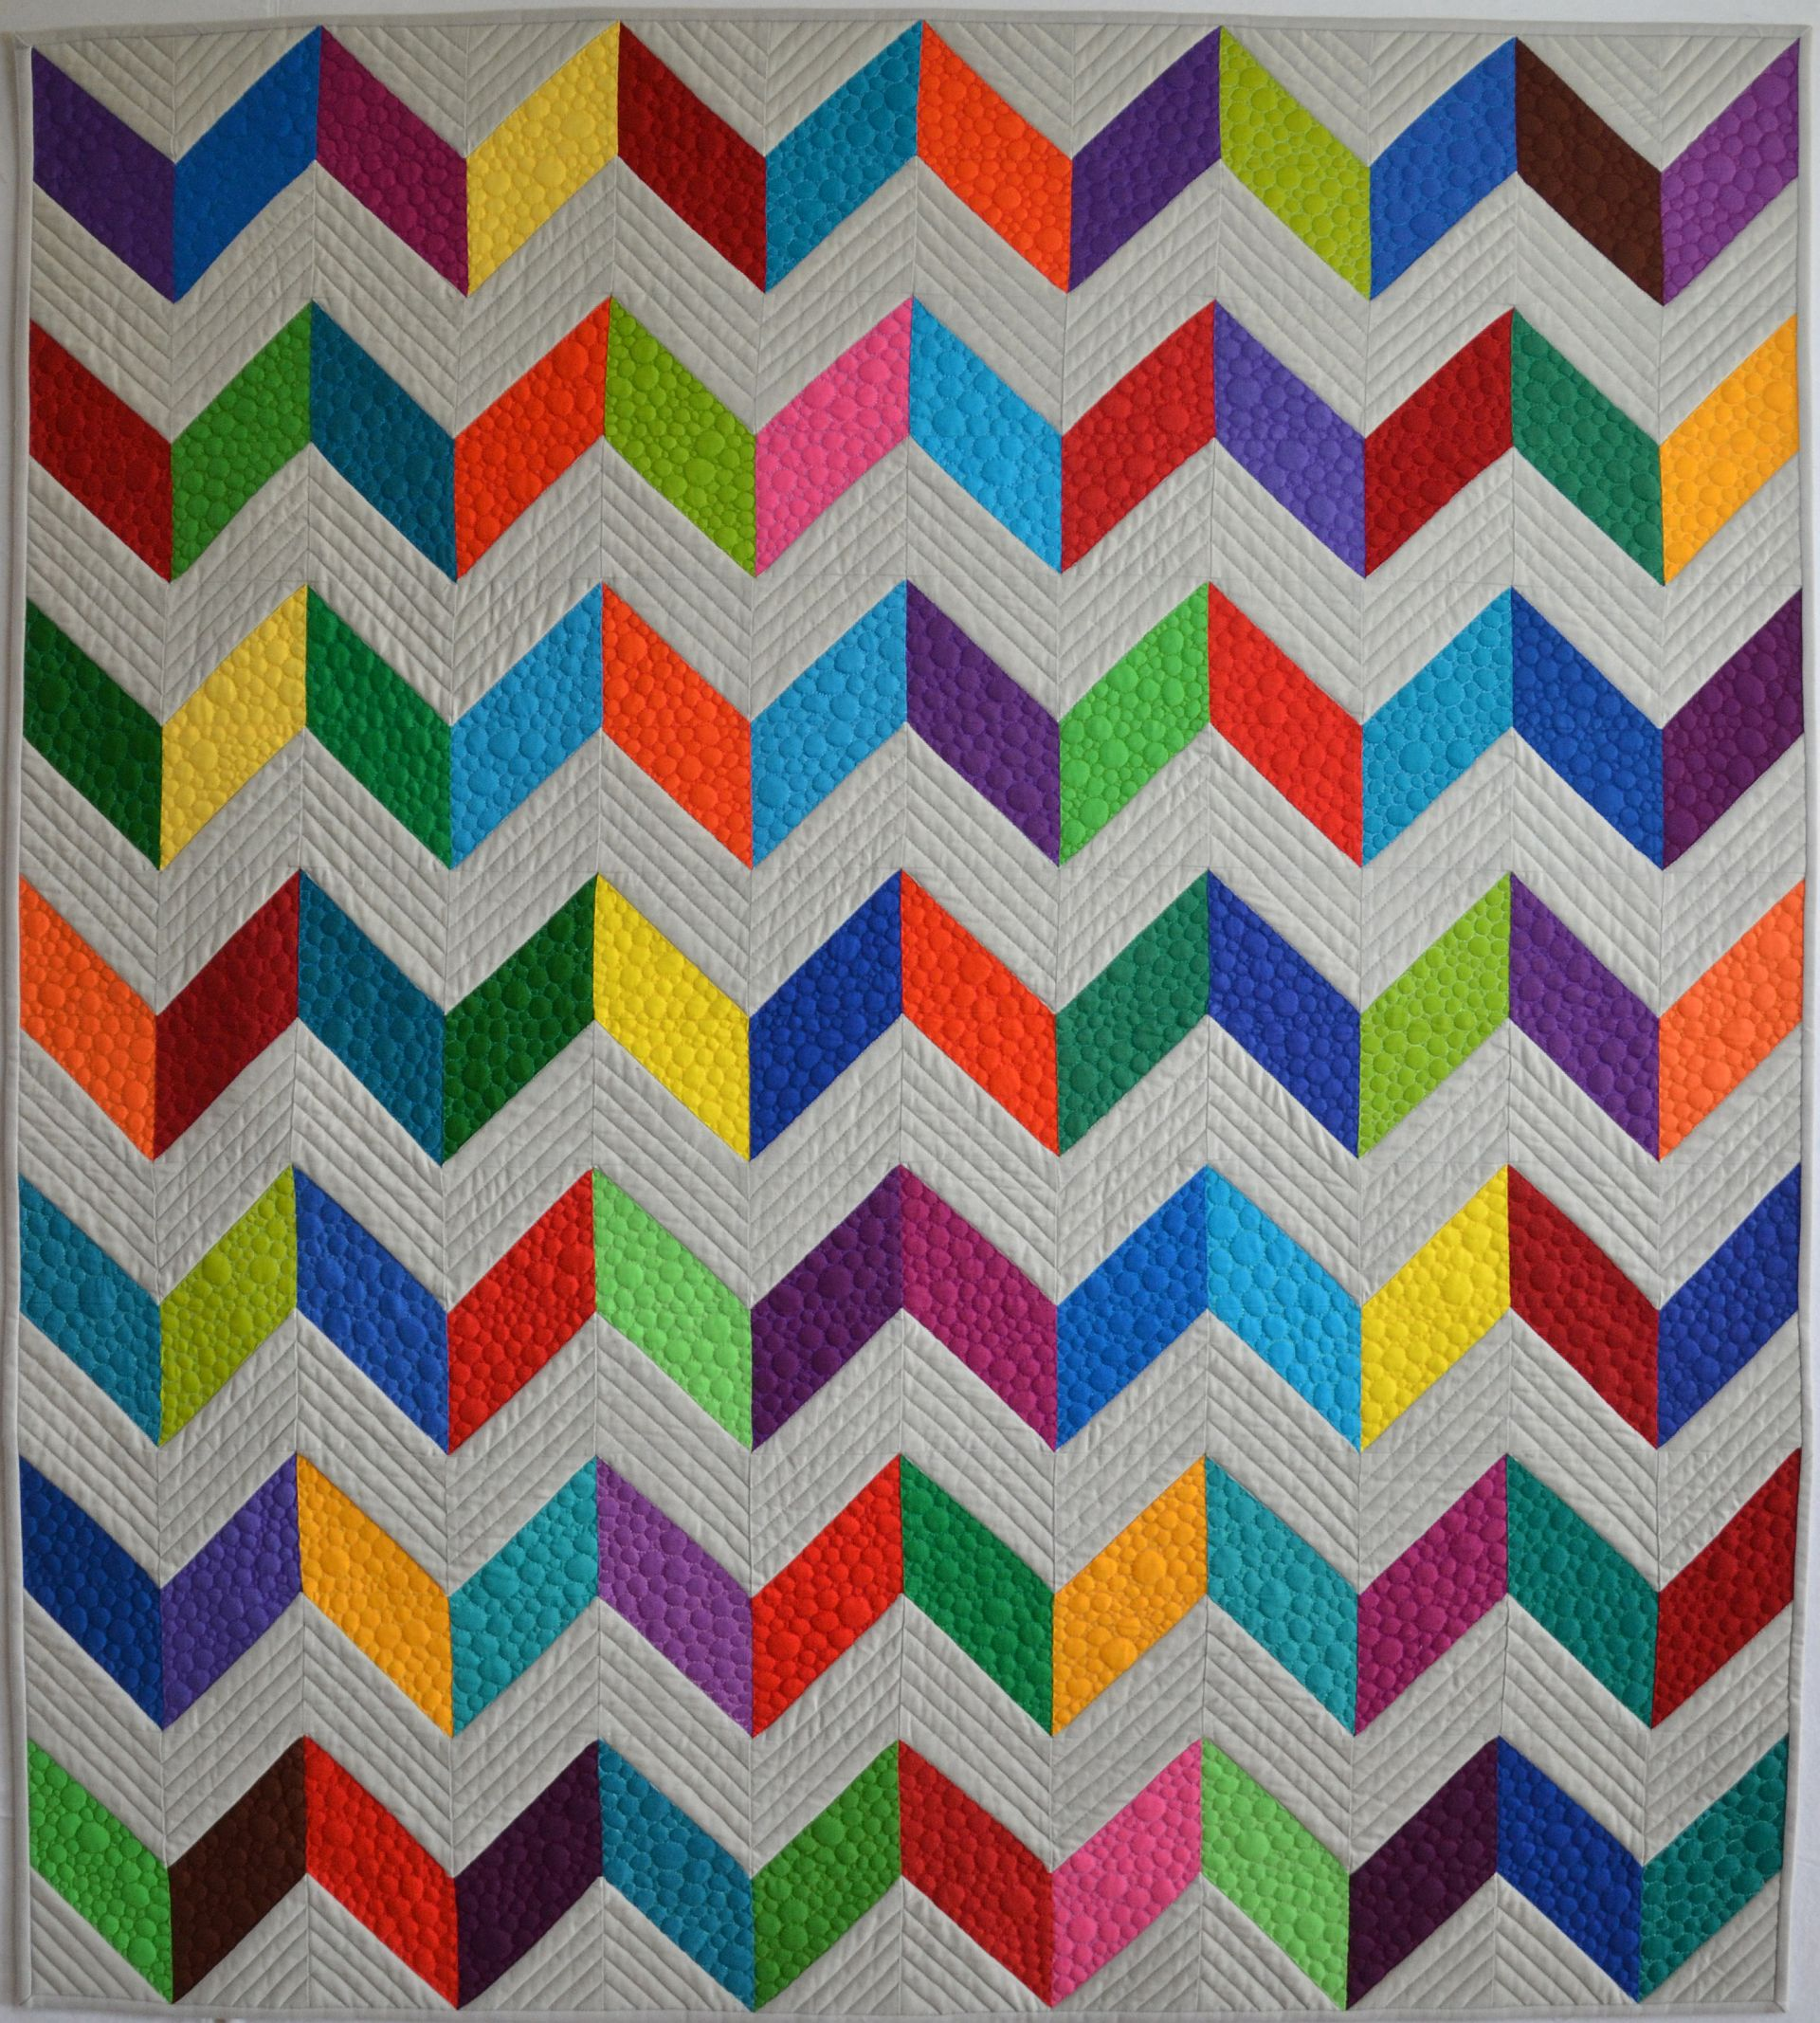 Free Program To Design Quilts